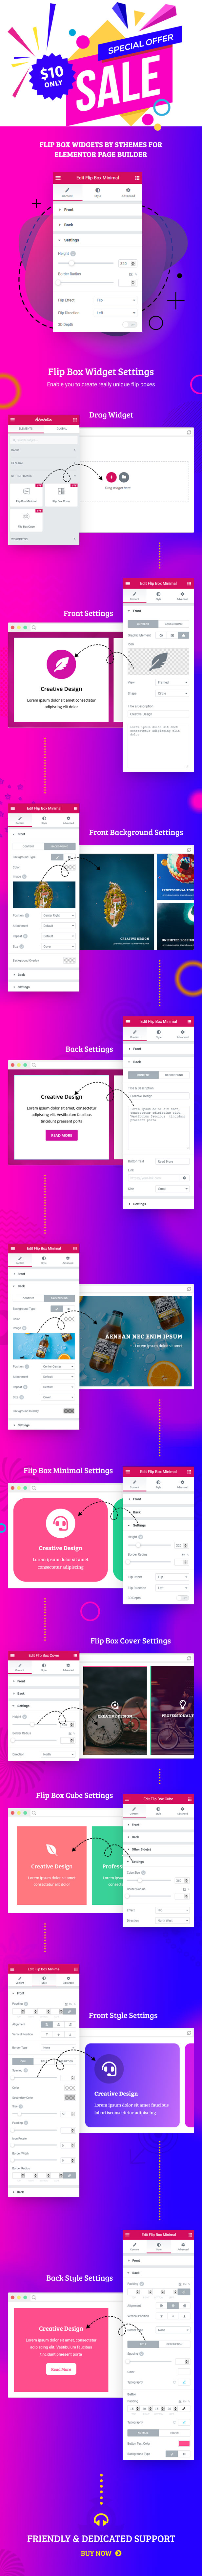 Image Hotspots Widgets by SThemes for Elementor Page builder